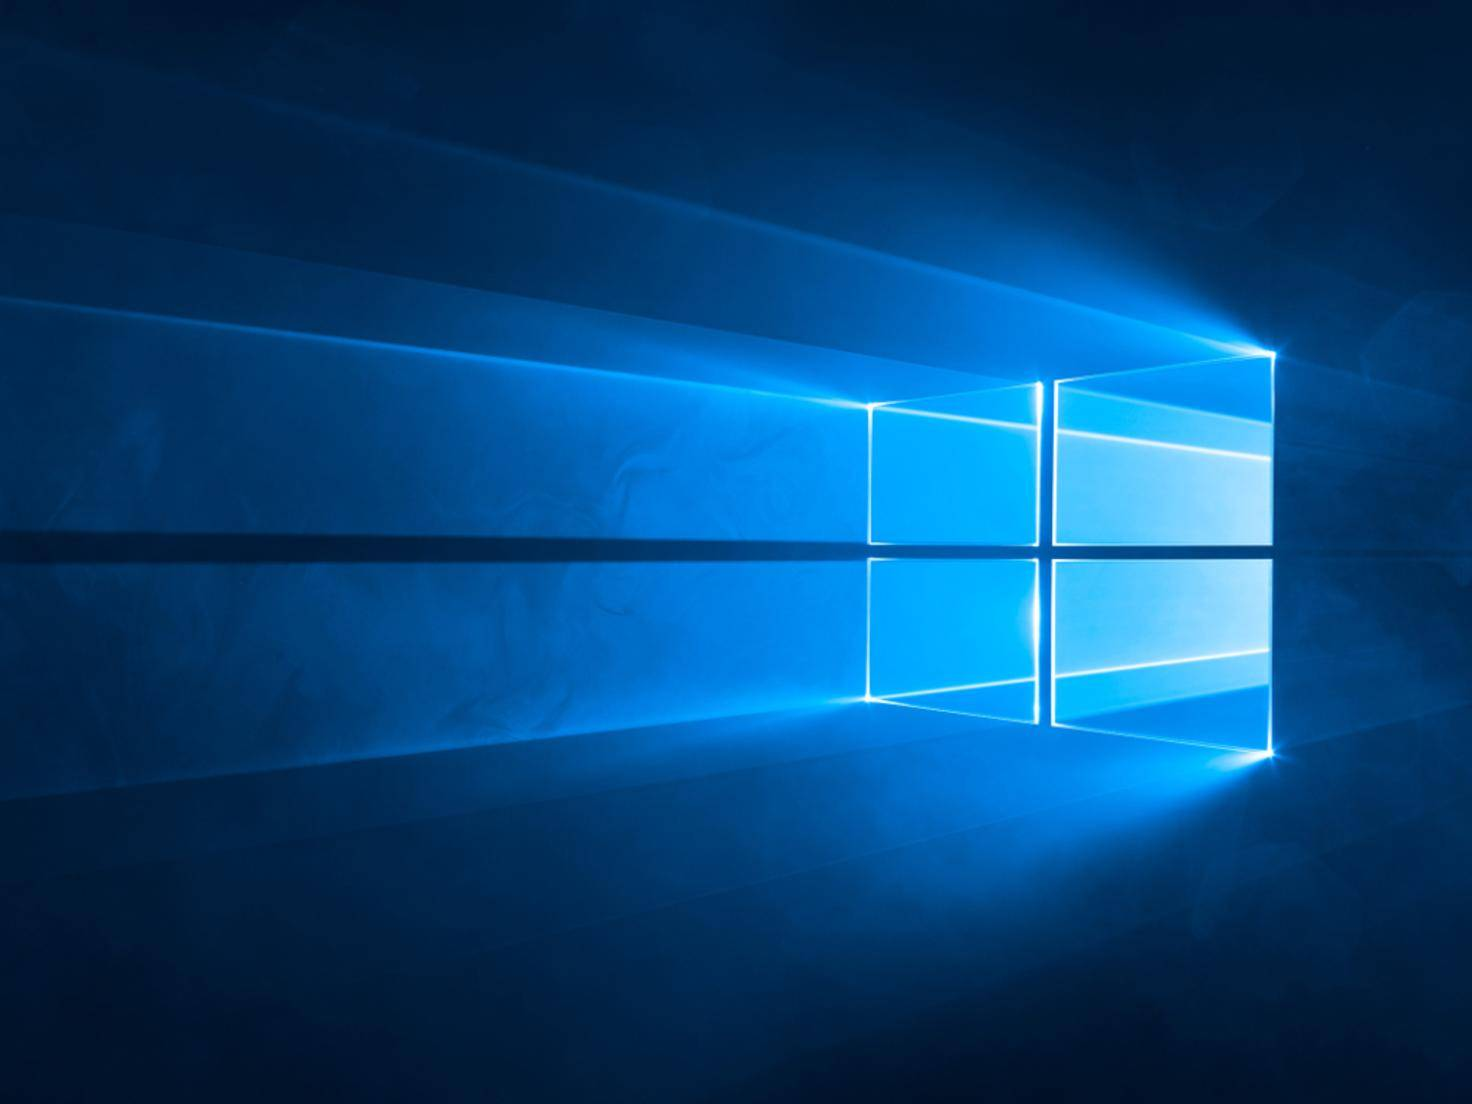 Windows_10_Stock_Wallpaper